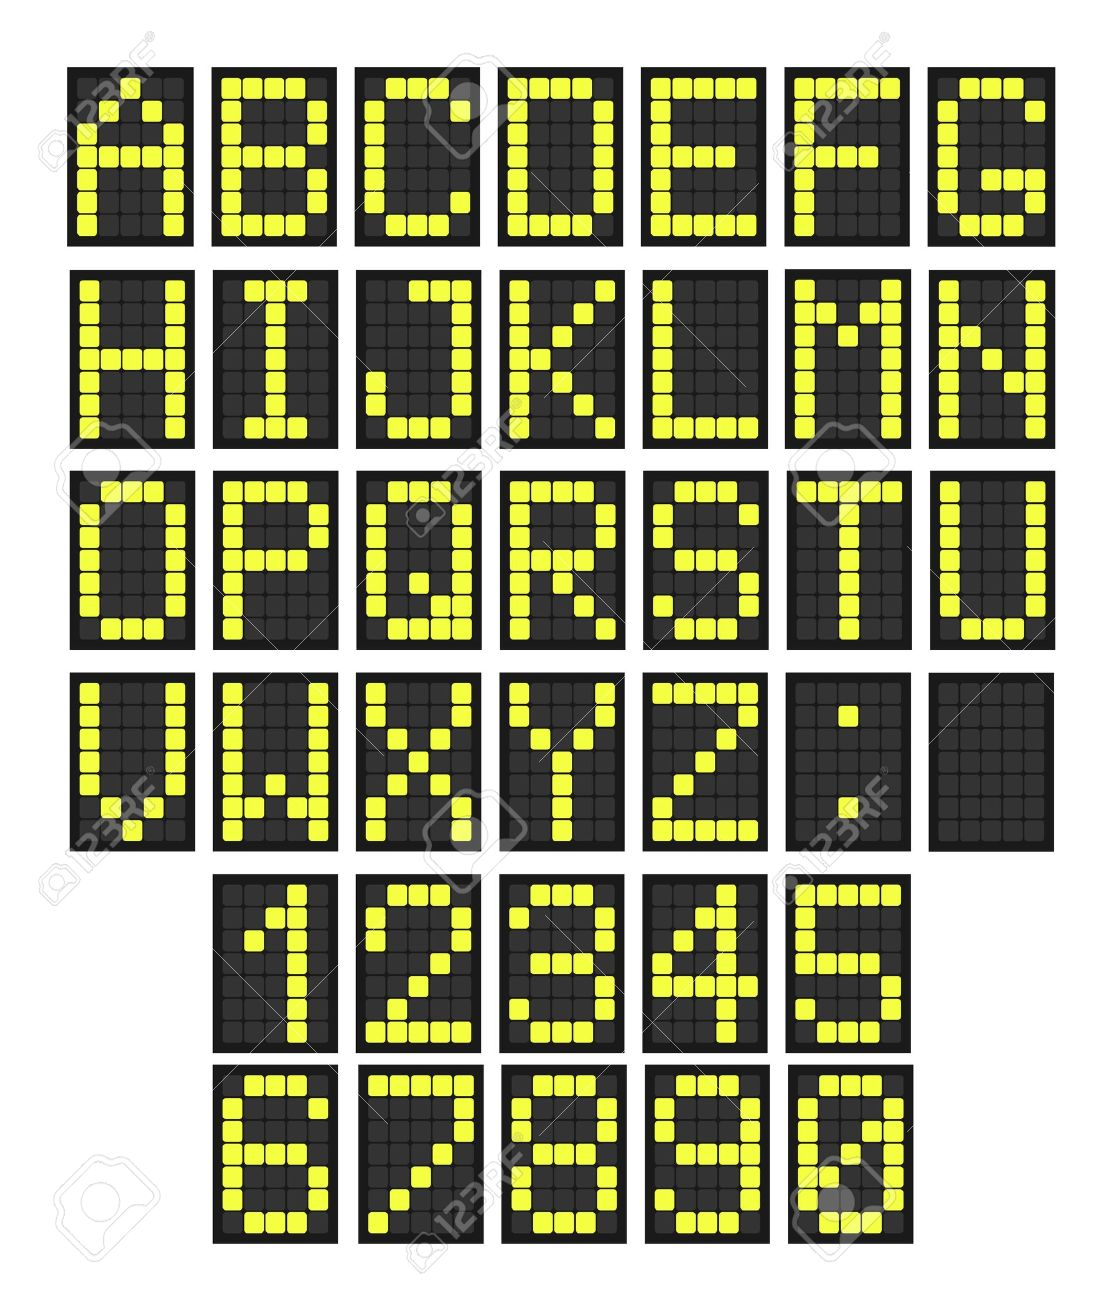 Font - letters and numbers imitating a digital display board